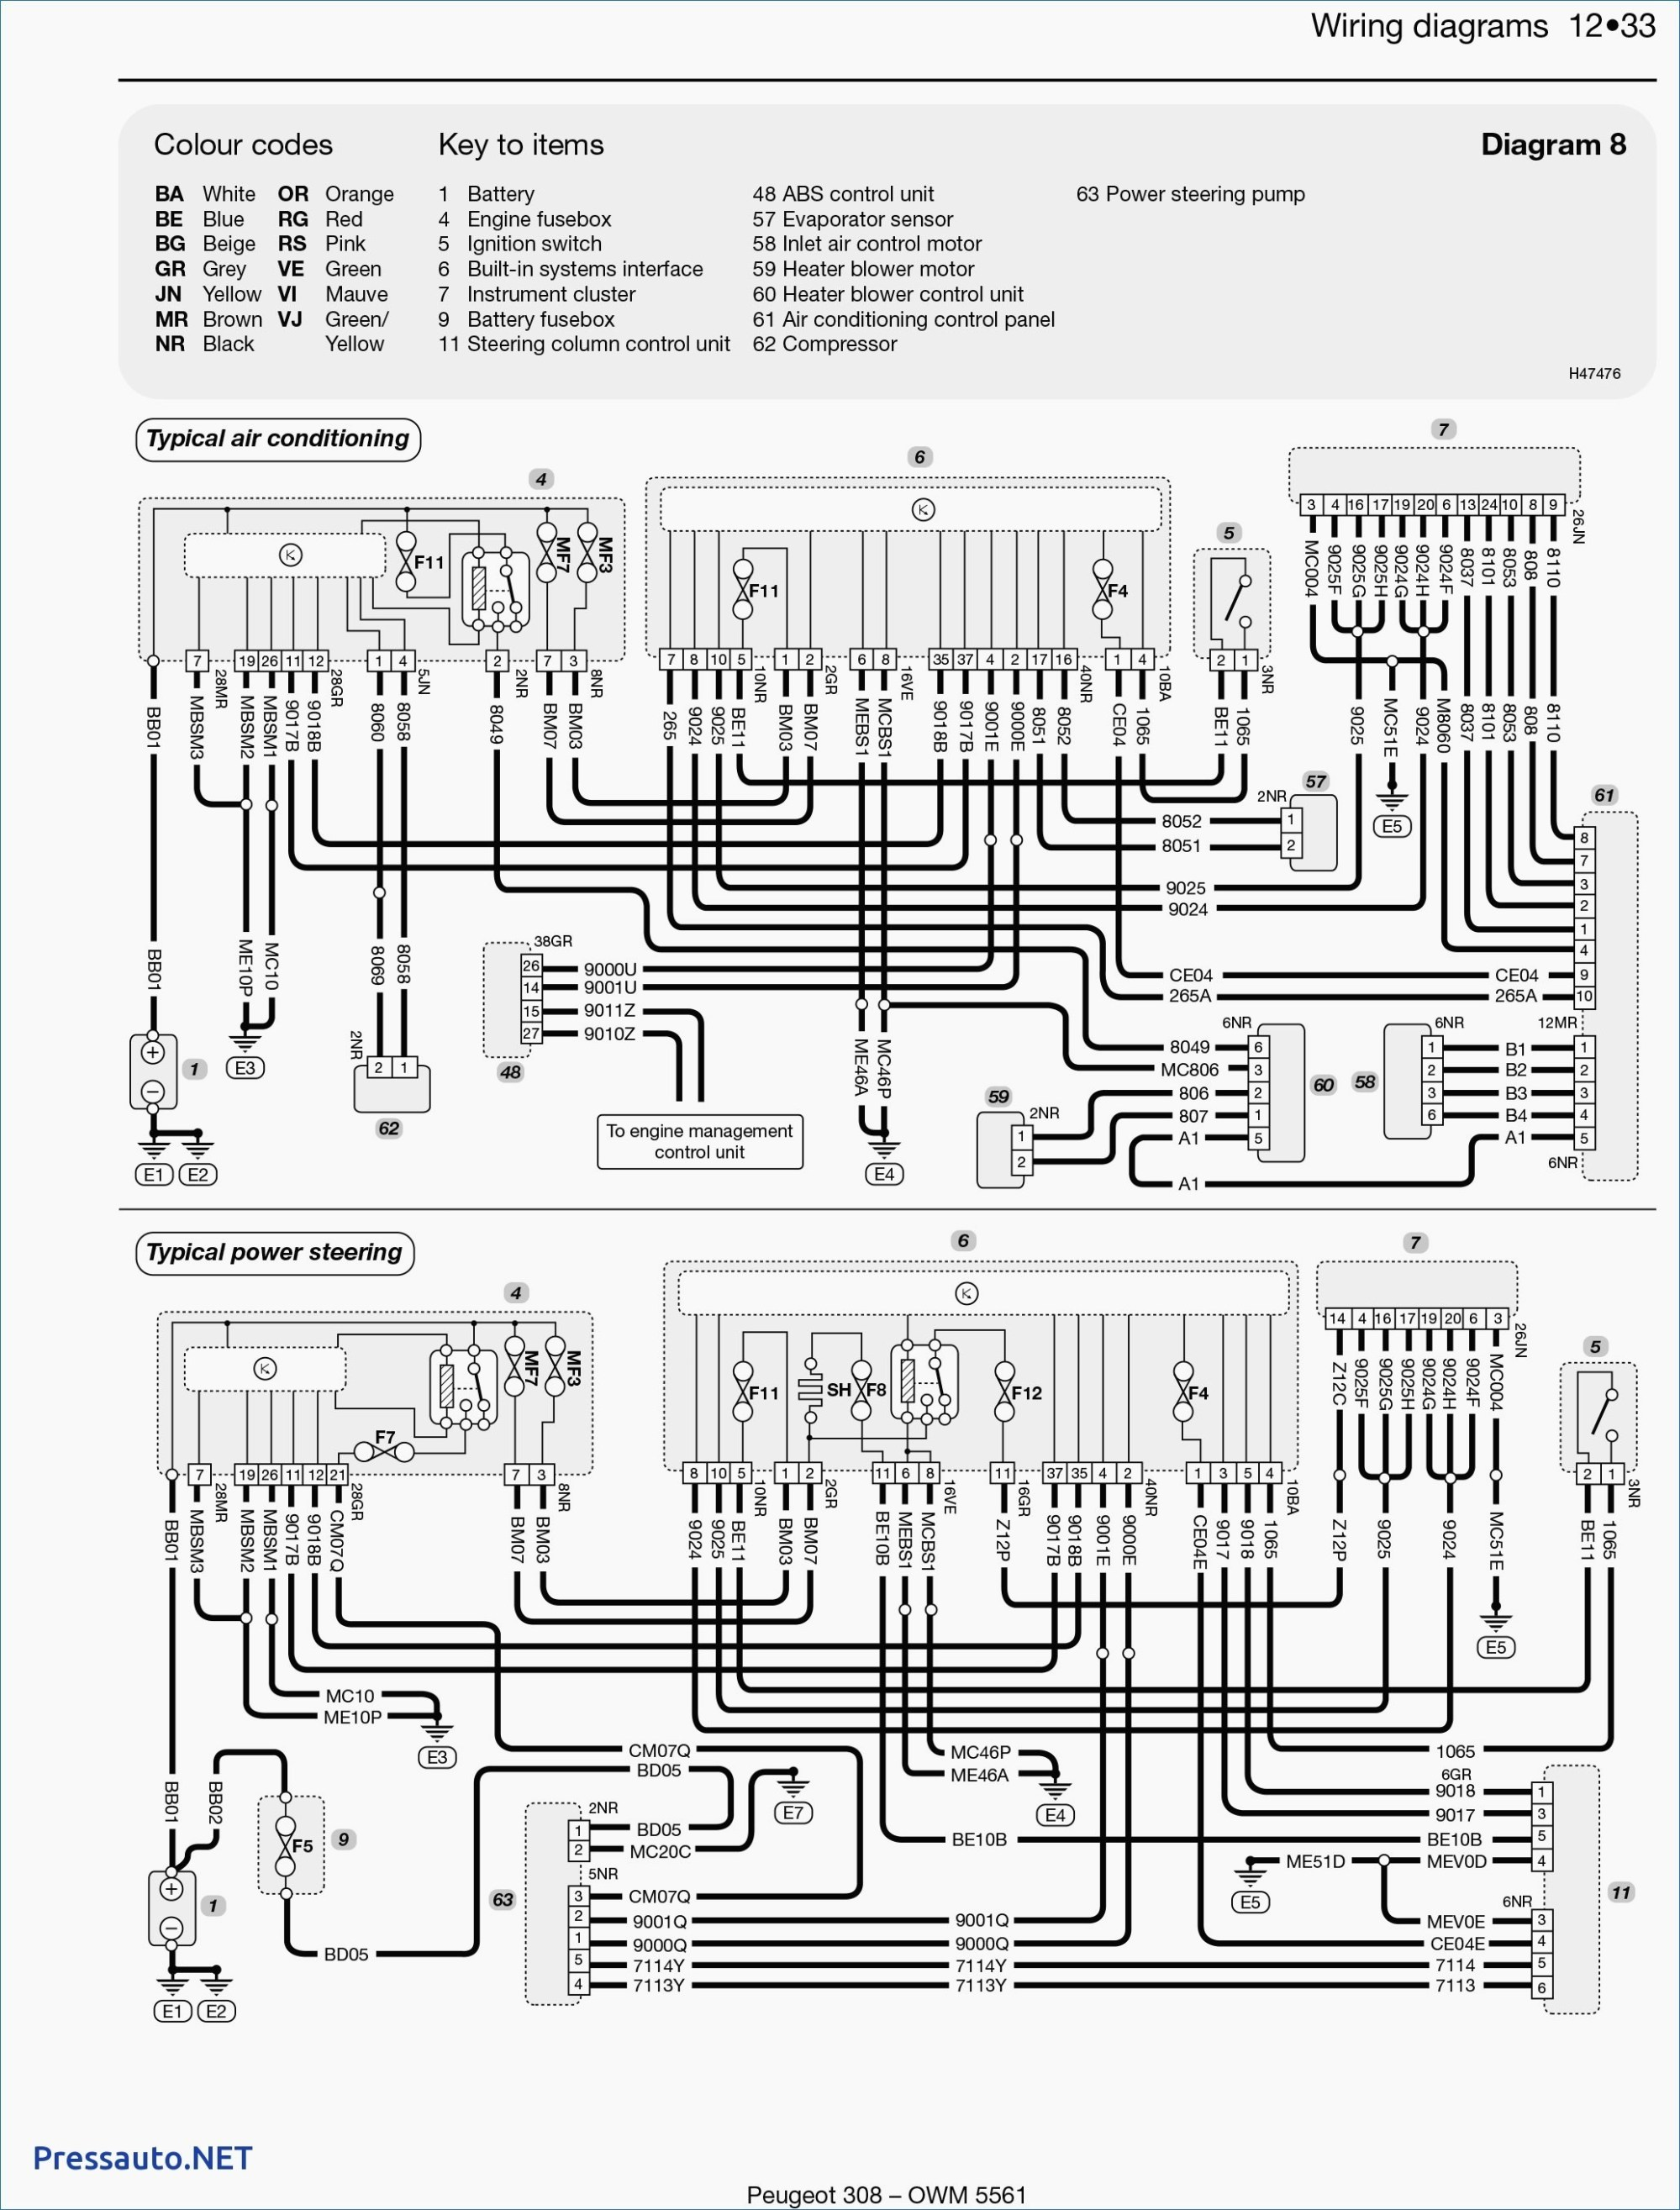 hight resolution of peugeot audio wiring diagram wiring diagram paper stereo wiring diagram peugeot 206